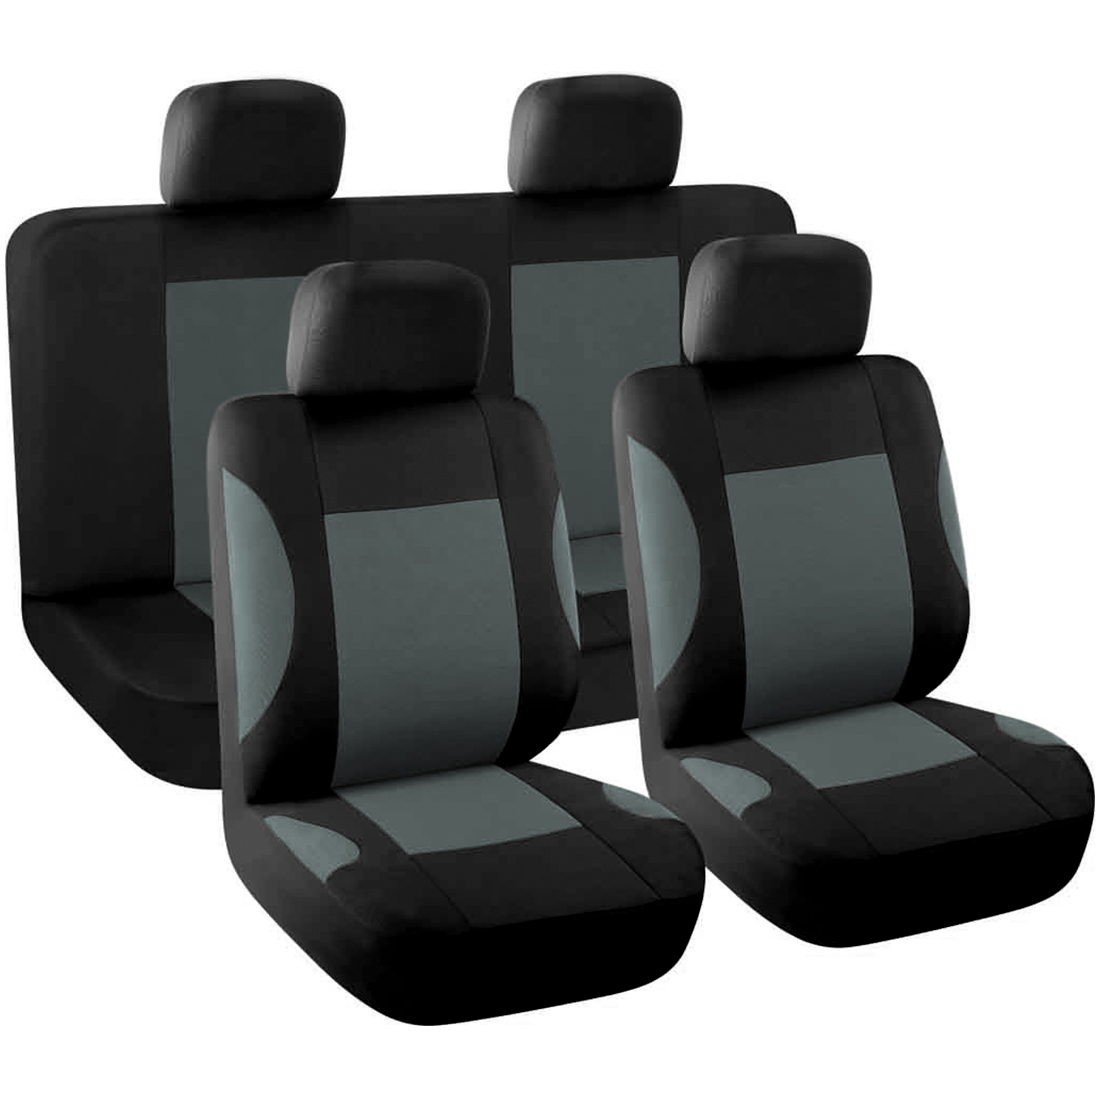 8pcs Styling Auto Interior Accessories Car Seat Cover full set Gray